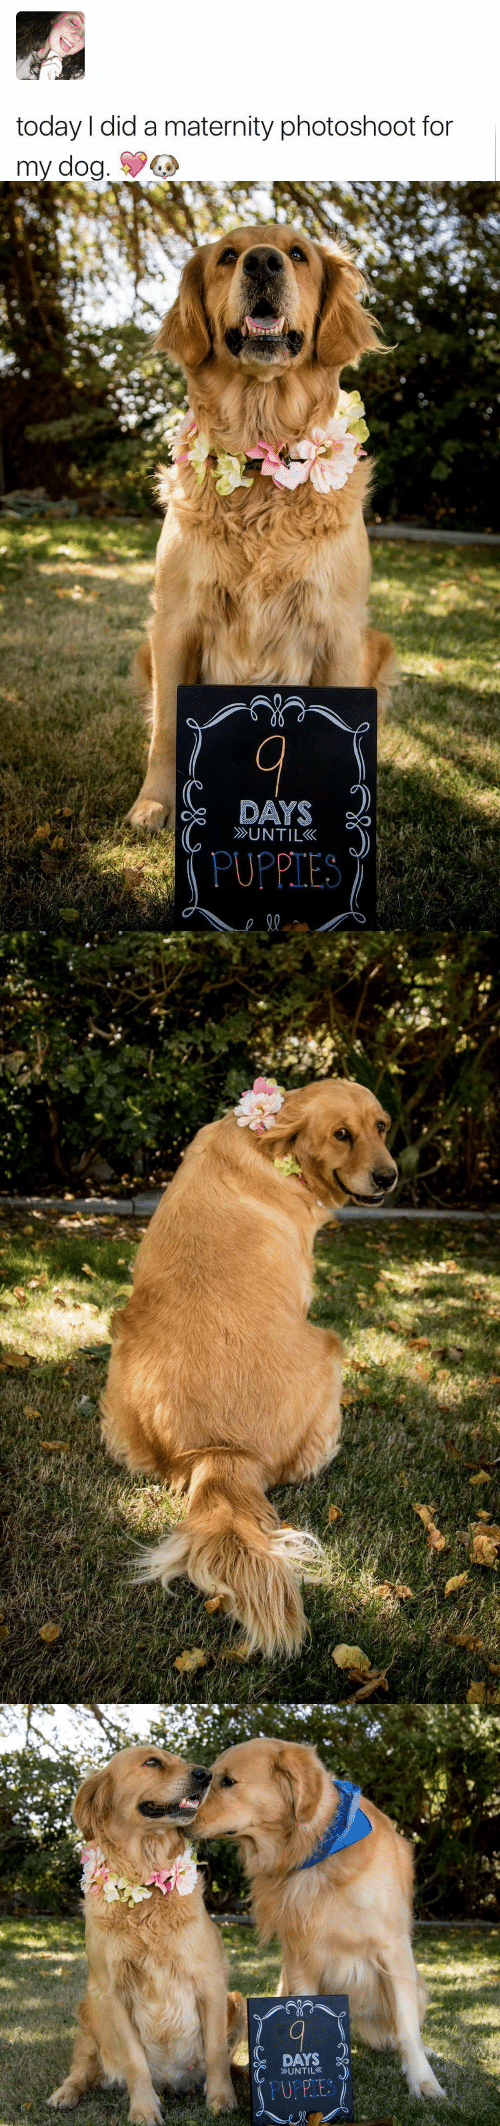 Puppies, Today, and Dog: today I did a maternity photoshoot for  my dog.   DAYS  UNTIL  PUPPIES   DAYS  UNTIL  PUPPIES